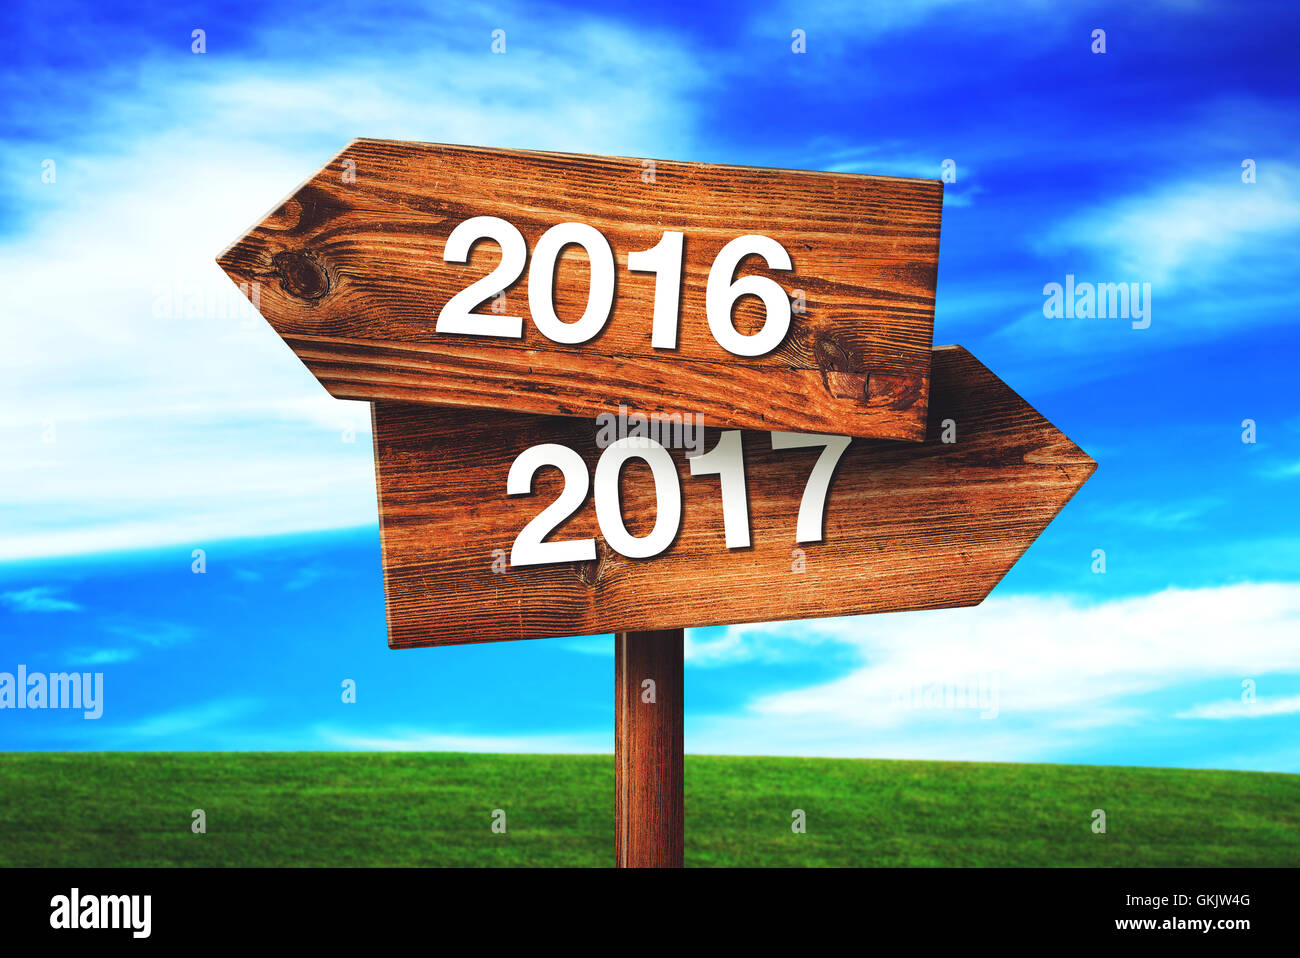 2016 and 2017 crossroads direction signs against blue sky - Stock Image